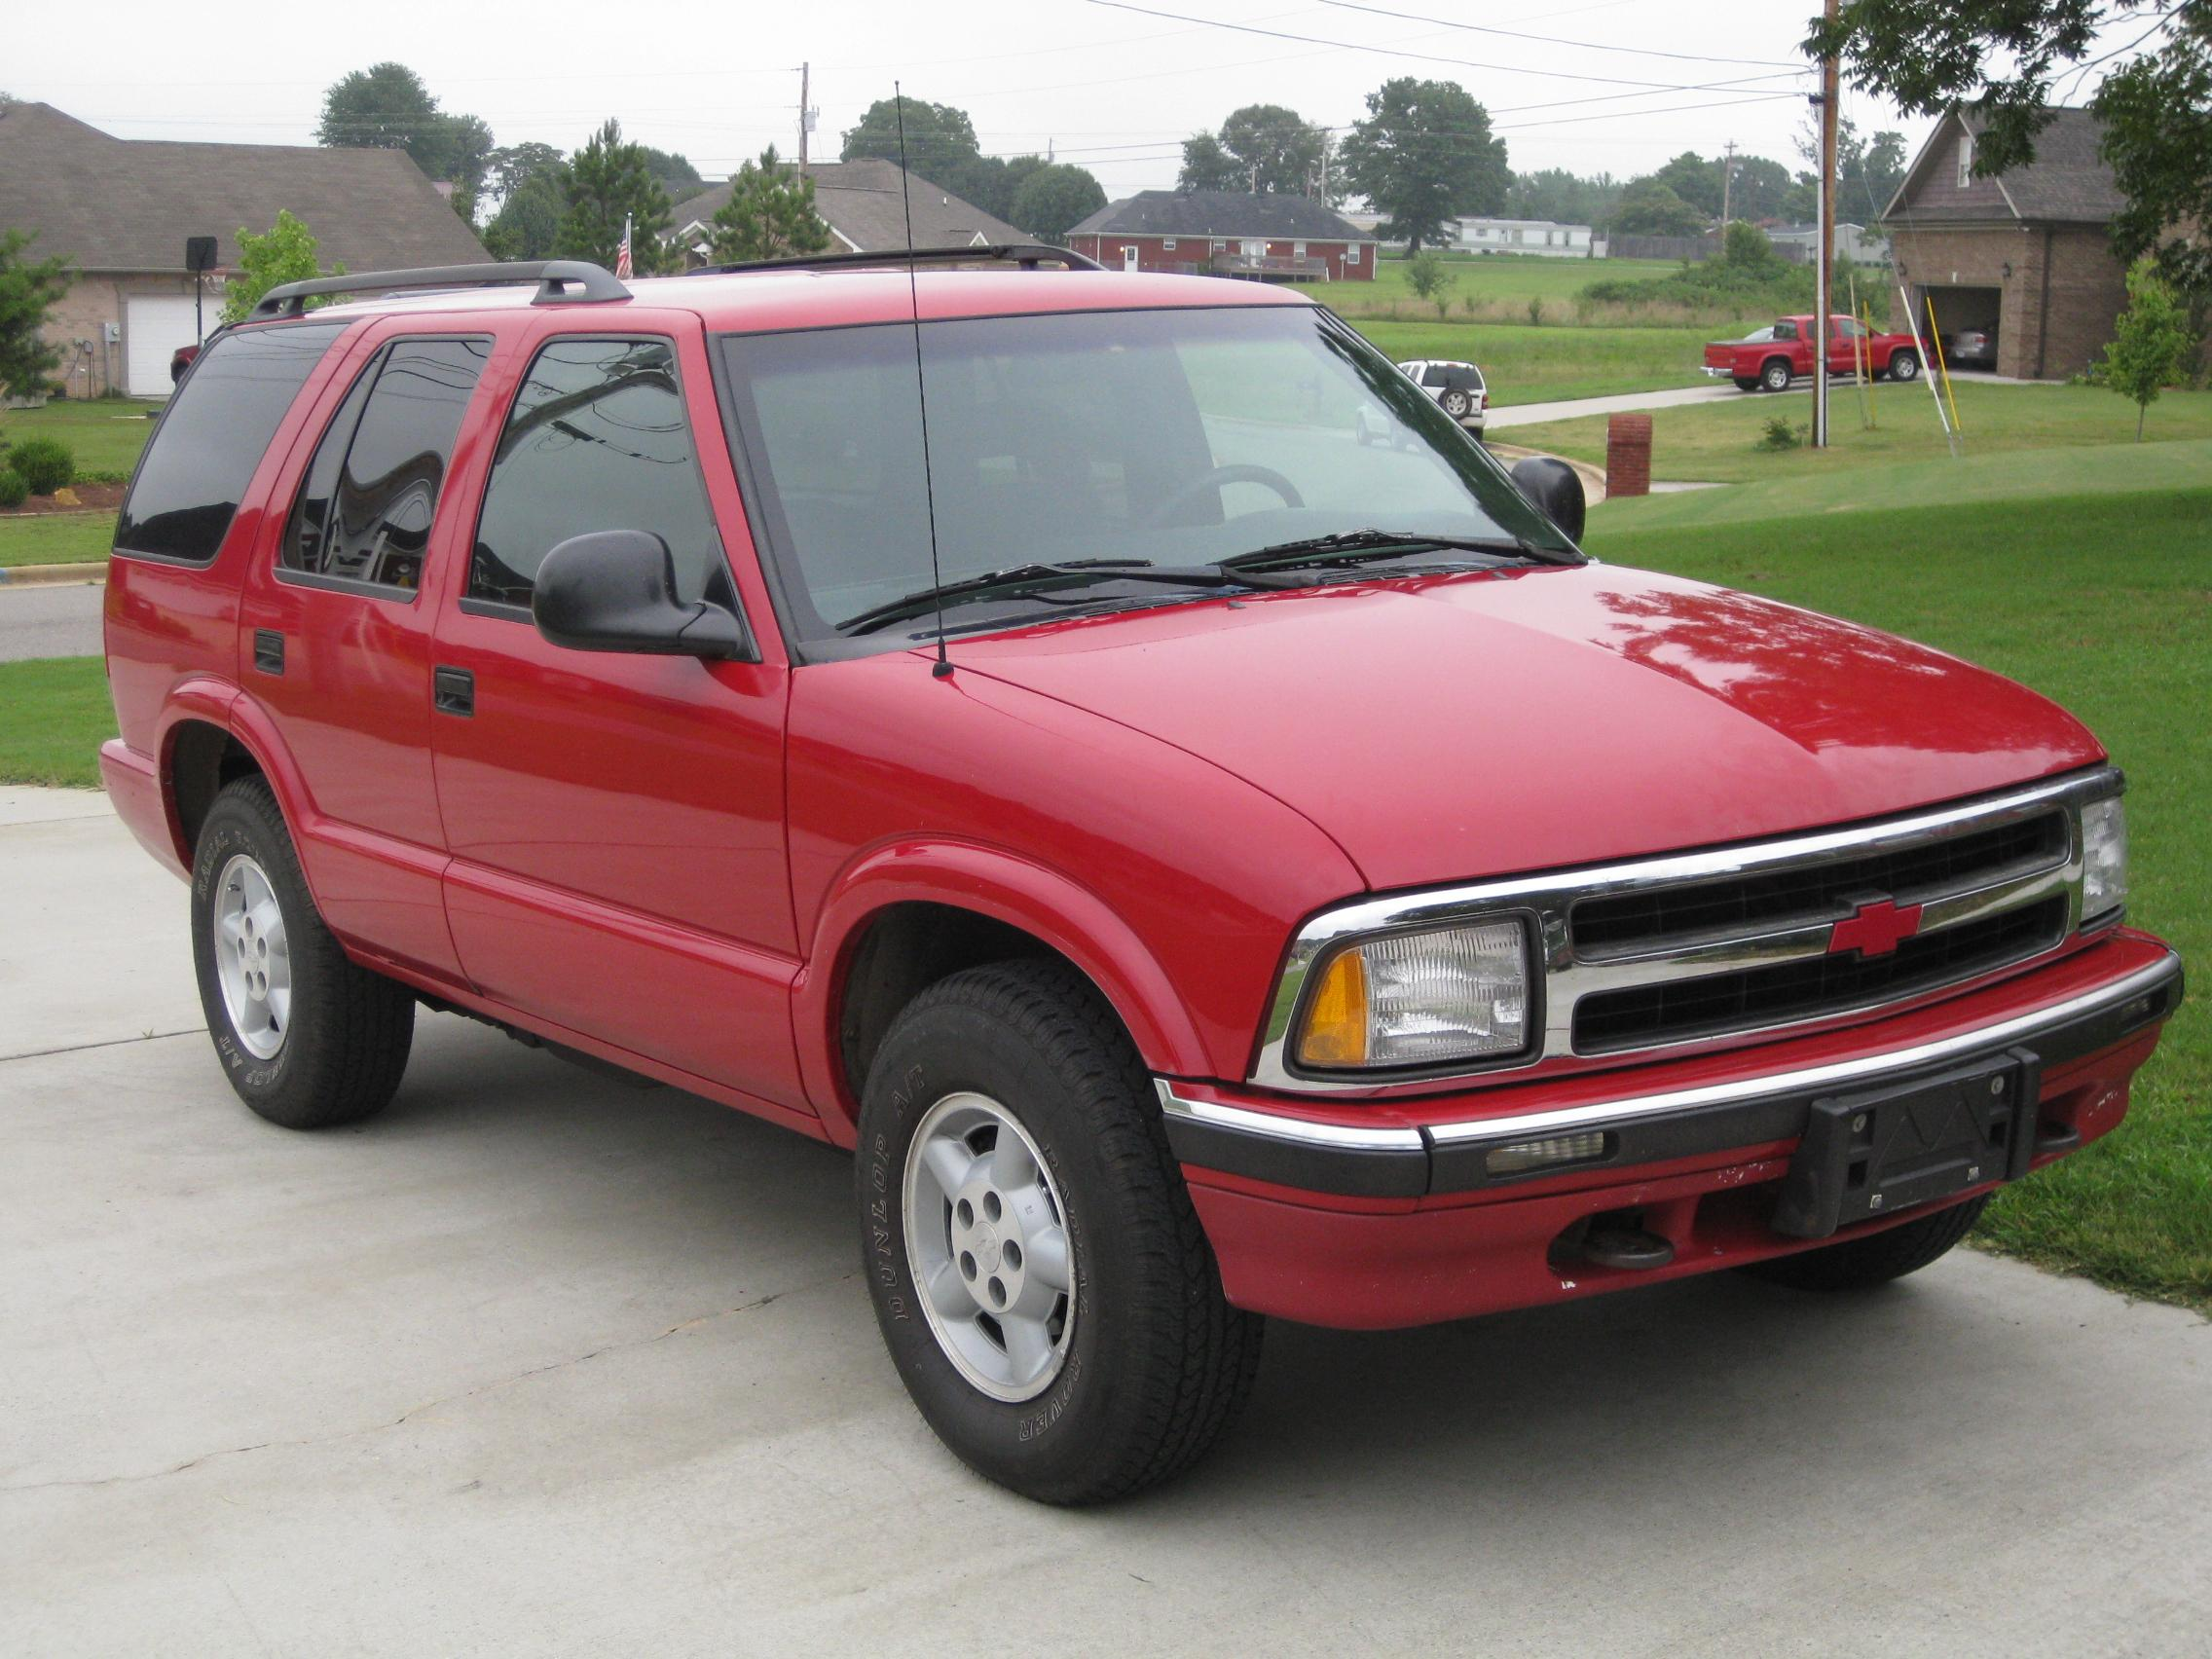 Nickdawg92 1997 Chevrolet Blazer Specs Photos